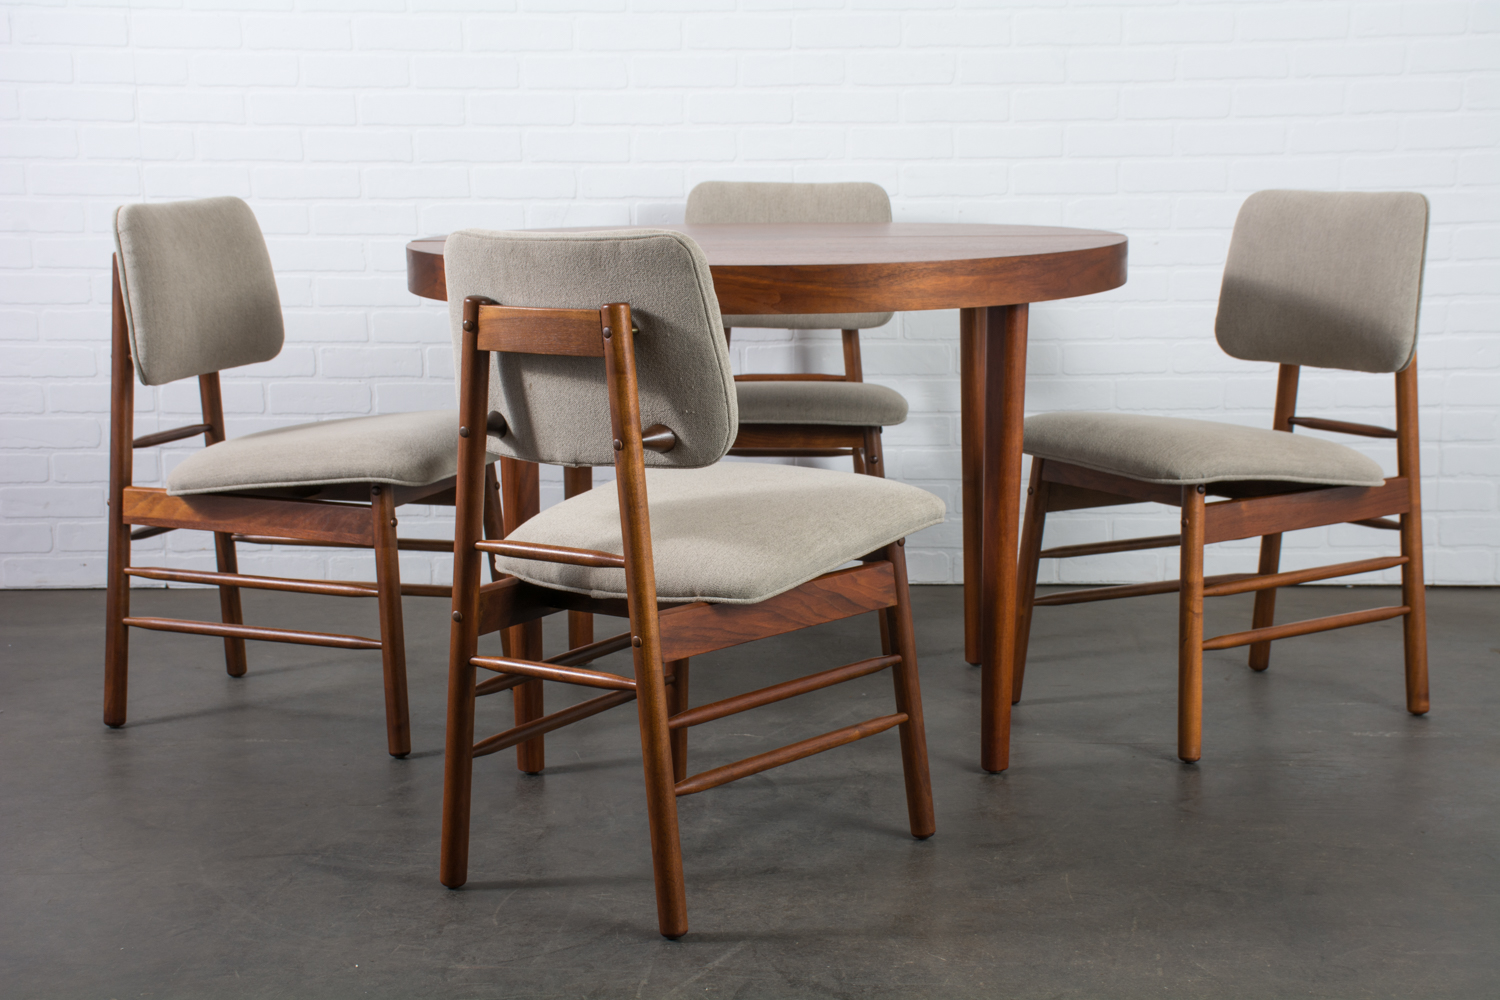 Greta Grossman Walnut Dining Table and Four Chairs